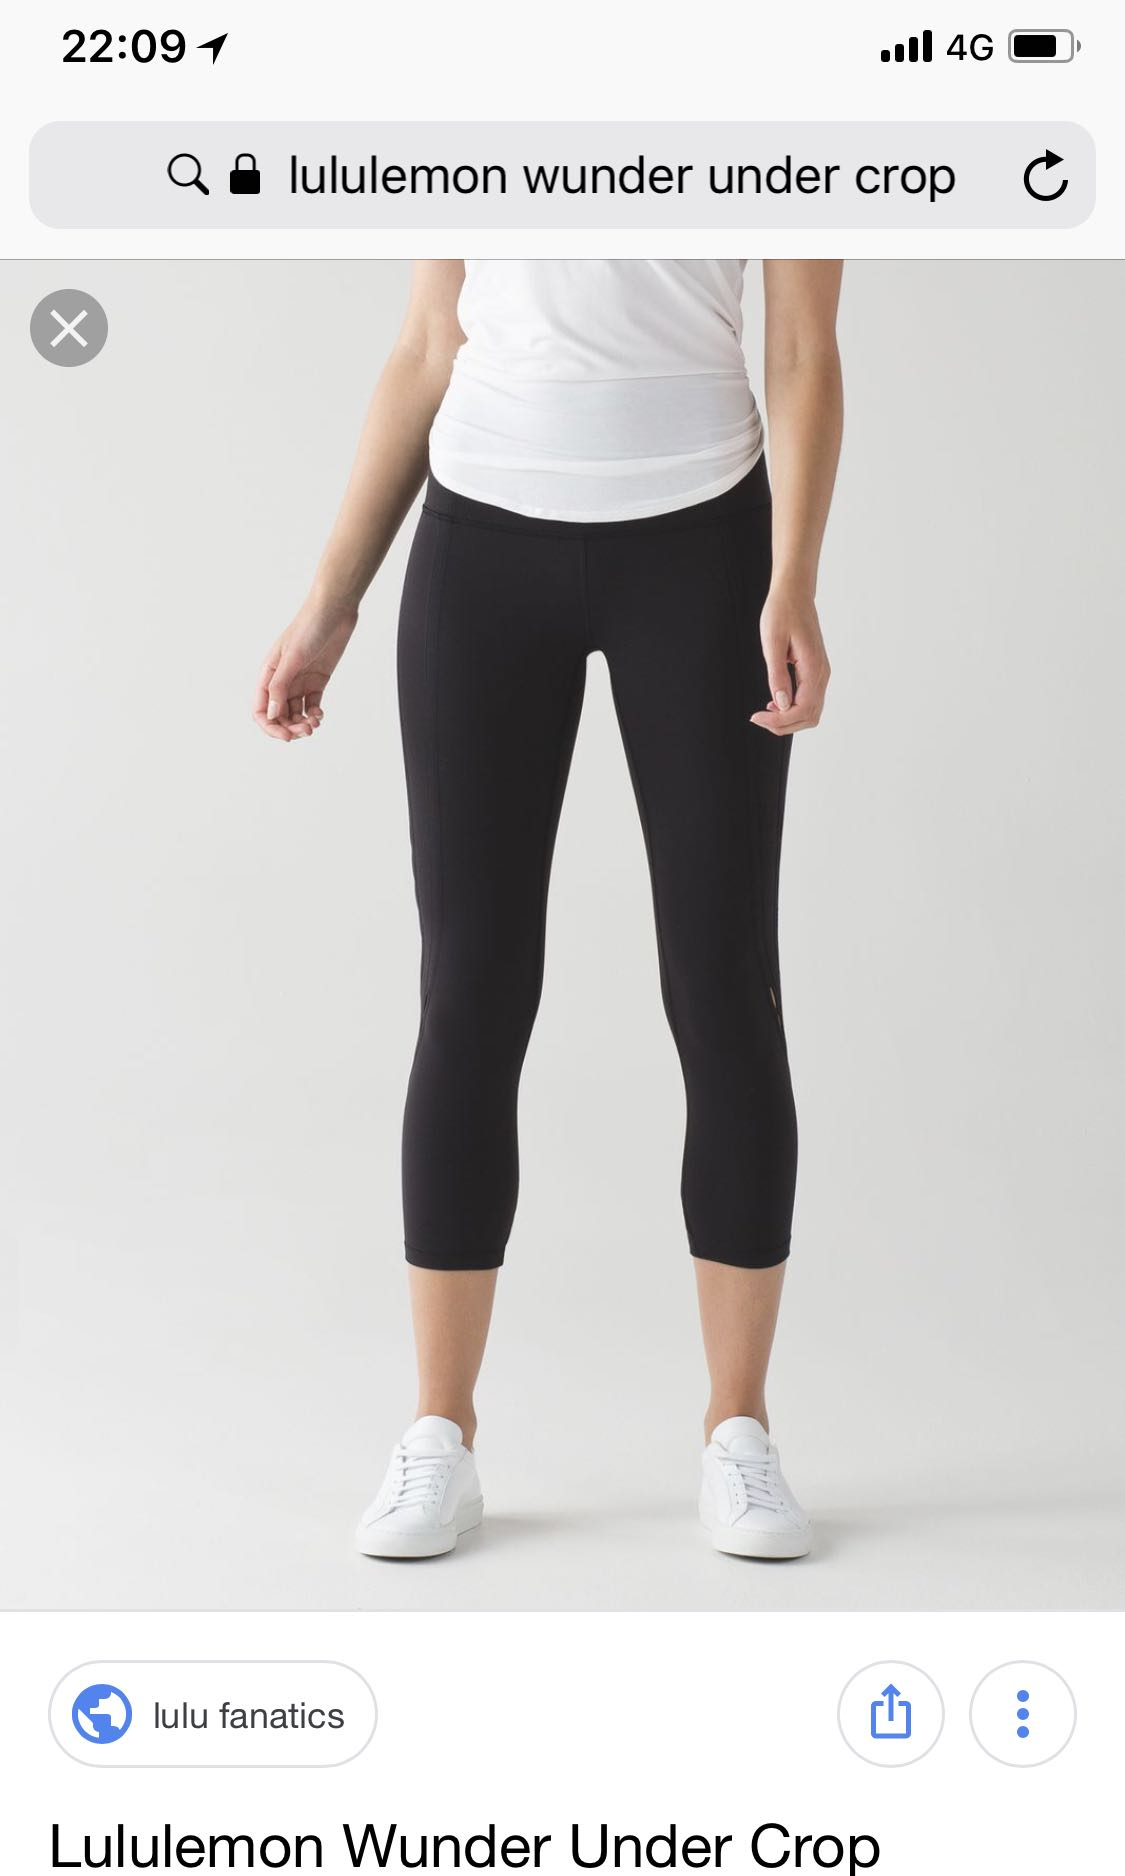 dc84e5c48a5ca Lululemon Wunder Under Crop Low rise, Sports, Sports Apparel on ...